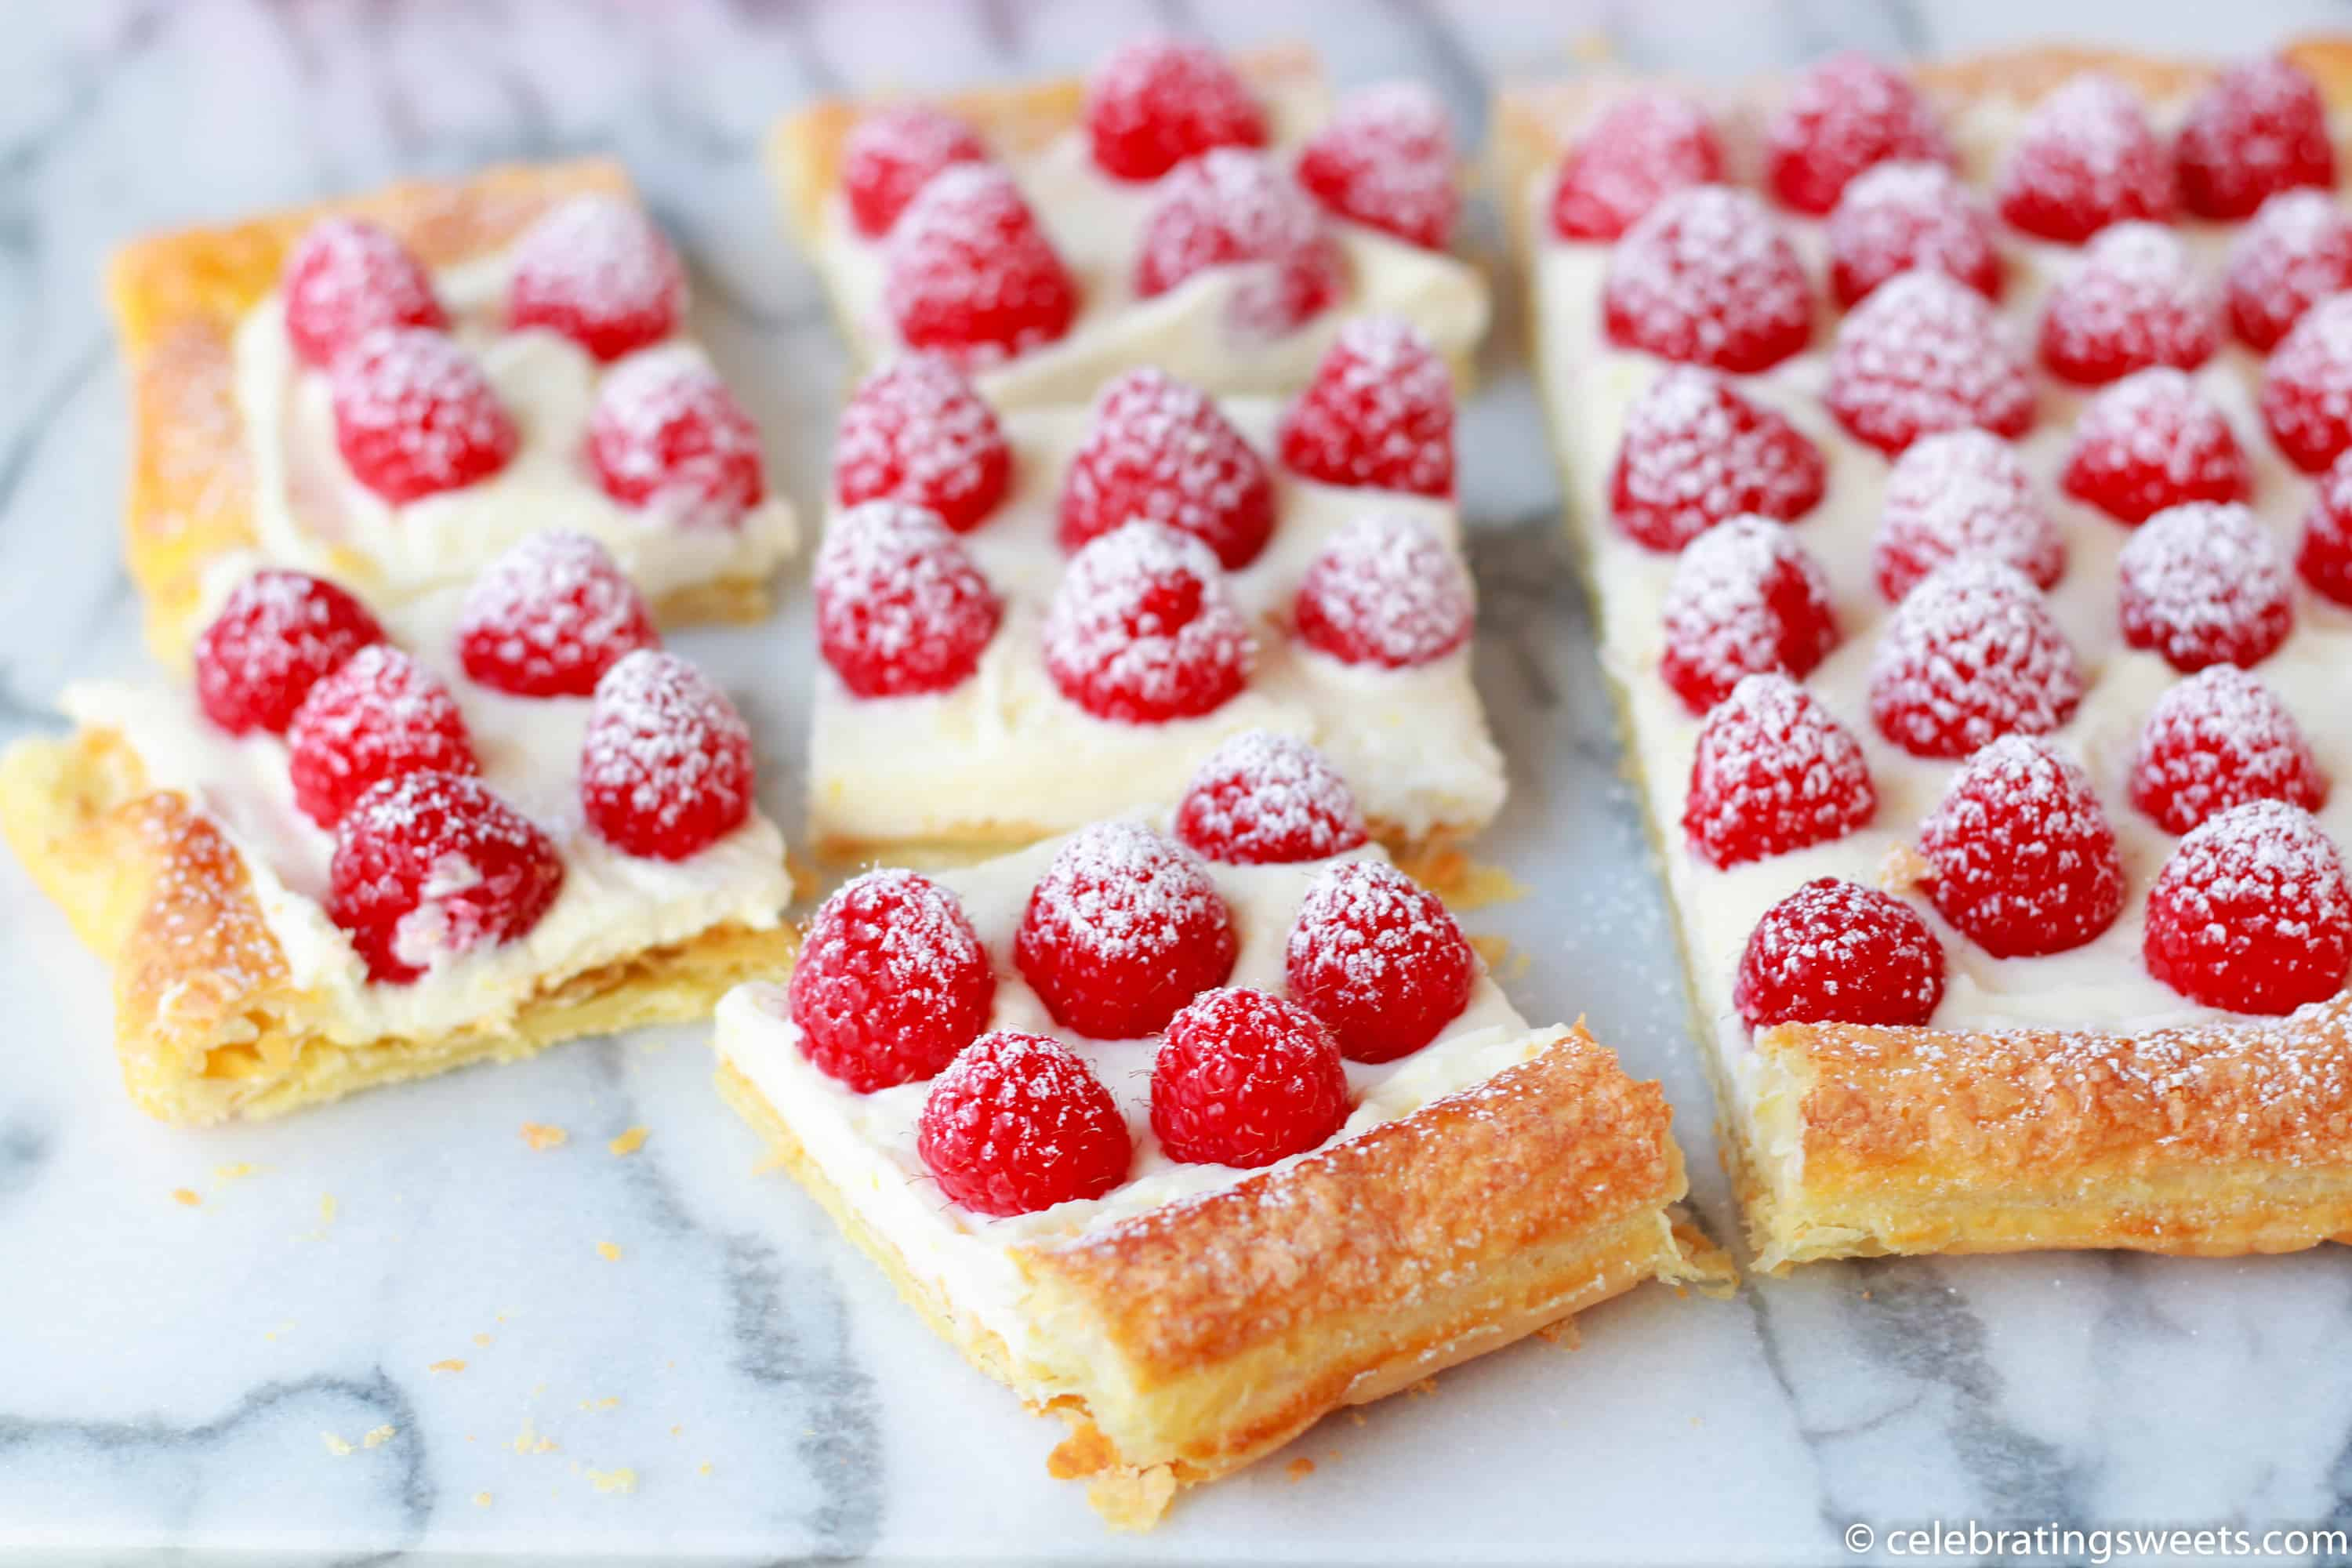 mousse tart raspberry lemon mousse tart lemon raspberry mousse tart ...